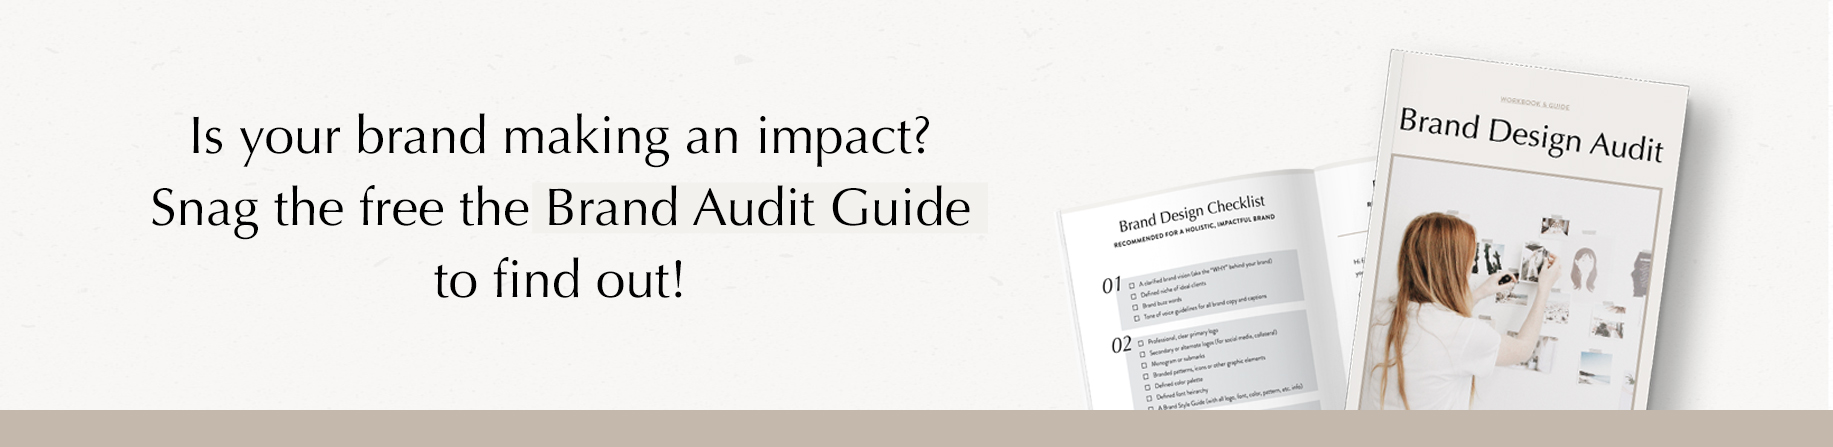 Brand Audit freebie image2.jpg